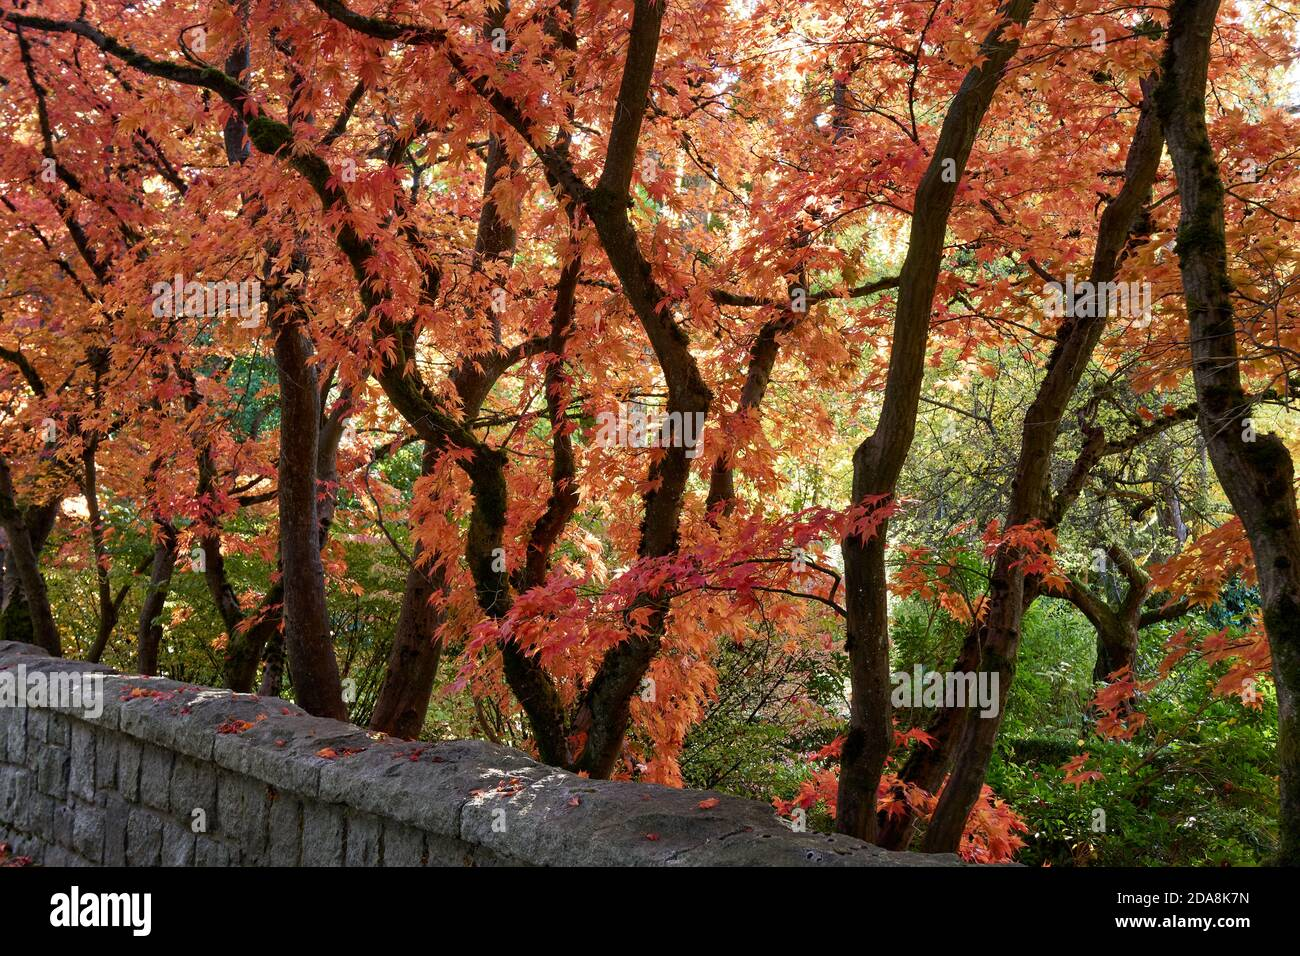 japanese-maple-acer-palmatum-trees-with-